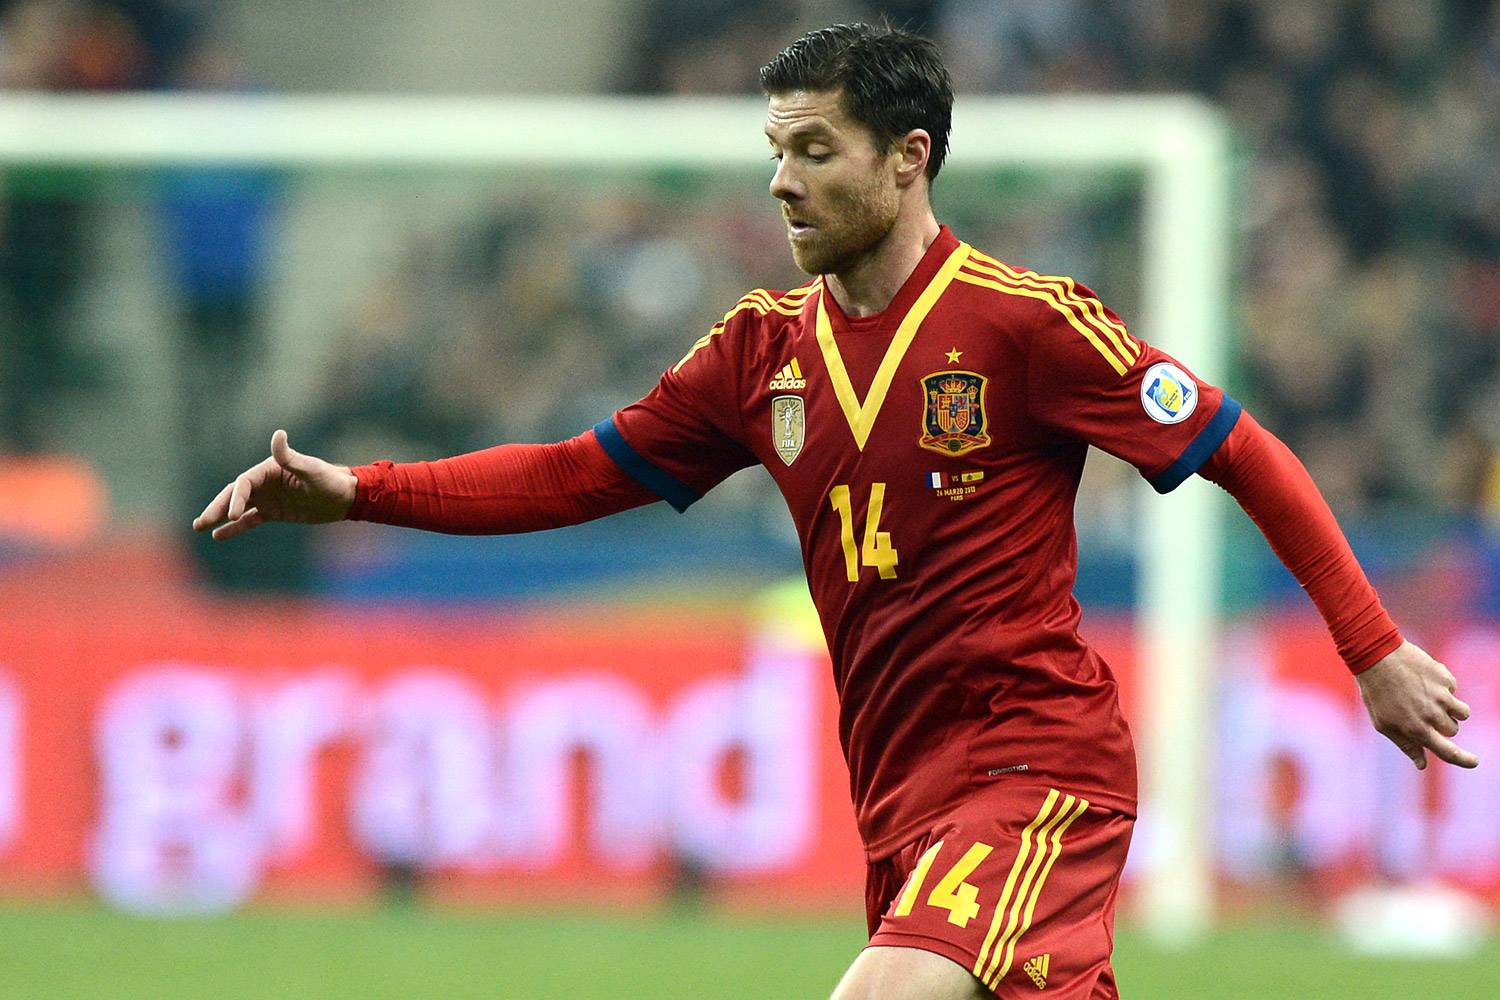 2014 xabi alonso spains wallpapers Desktop Backgrounds for HD 1500x1000